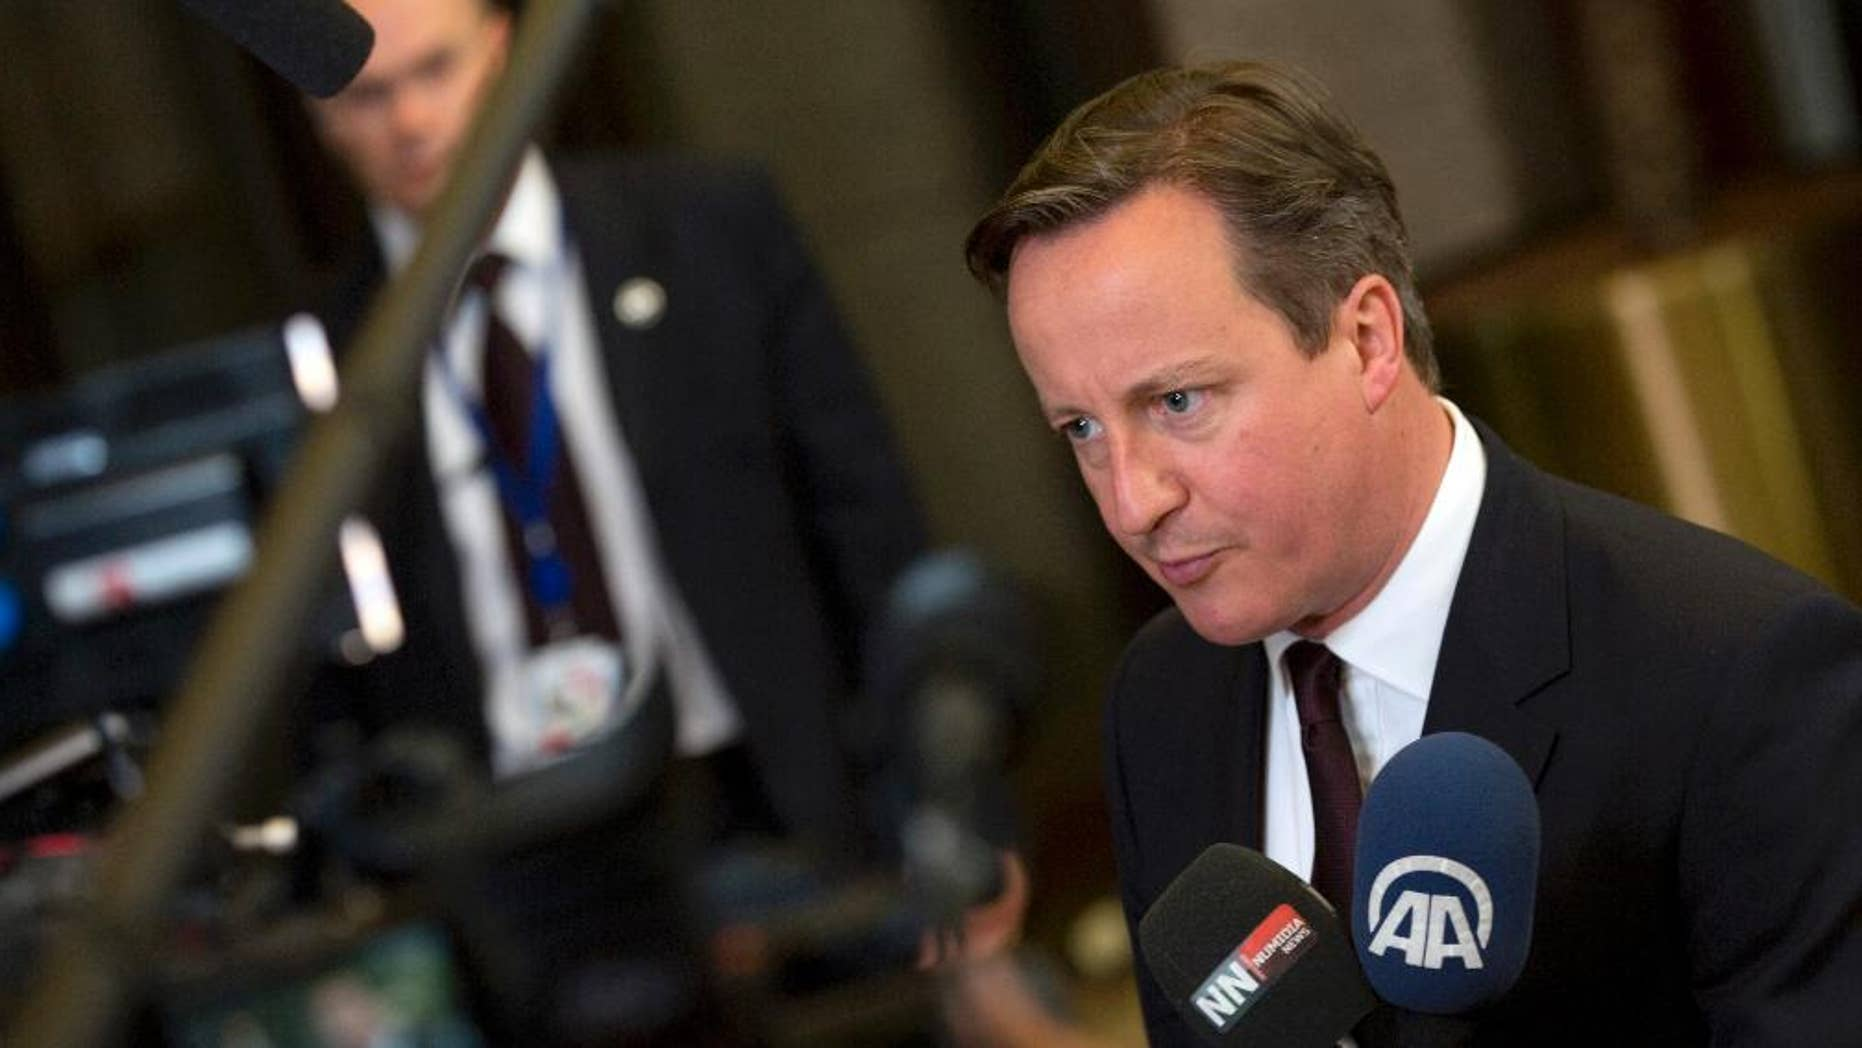 British Prime Minister David Cameron speaks with the media after an EU summit in Brussels on Friday, June 26, 2015. European leaders have tasked finance ministers from the euro countries with concluding a debt financing agreement with Greece over the weekend, just days before Athens has to meet a crucial debt deadline. (AP Photo/Virginia Mayo)